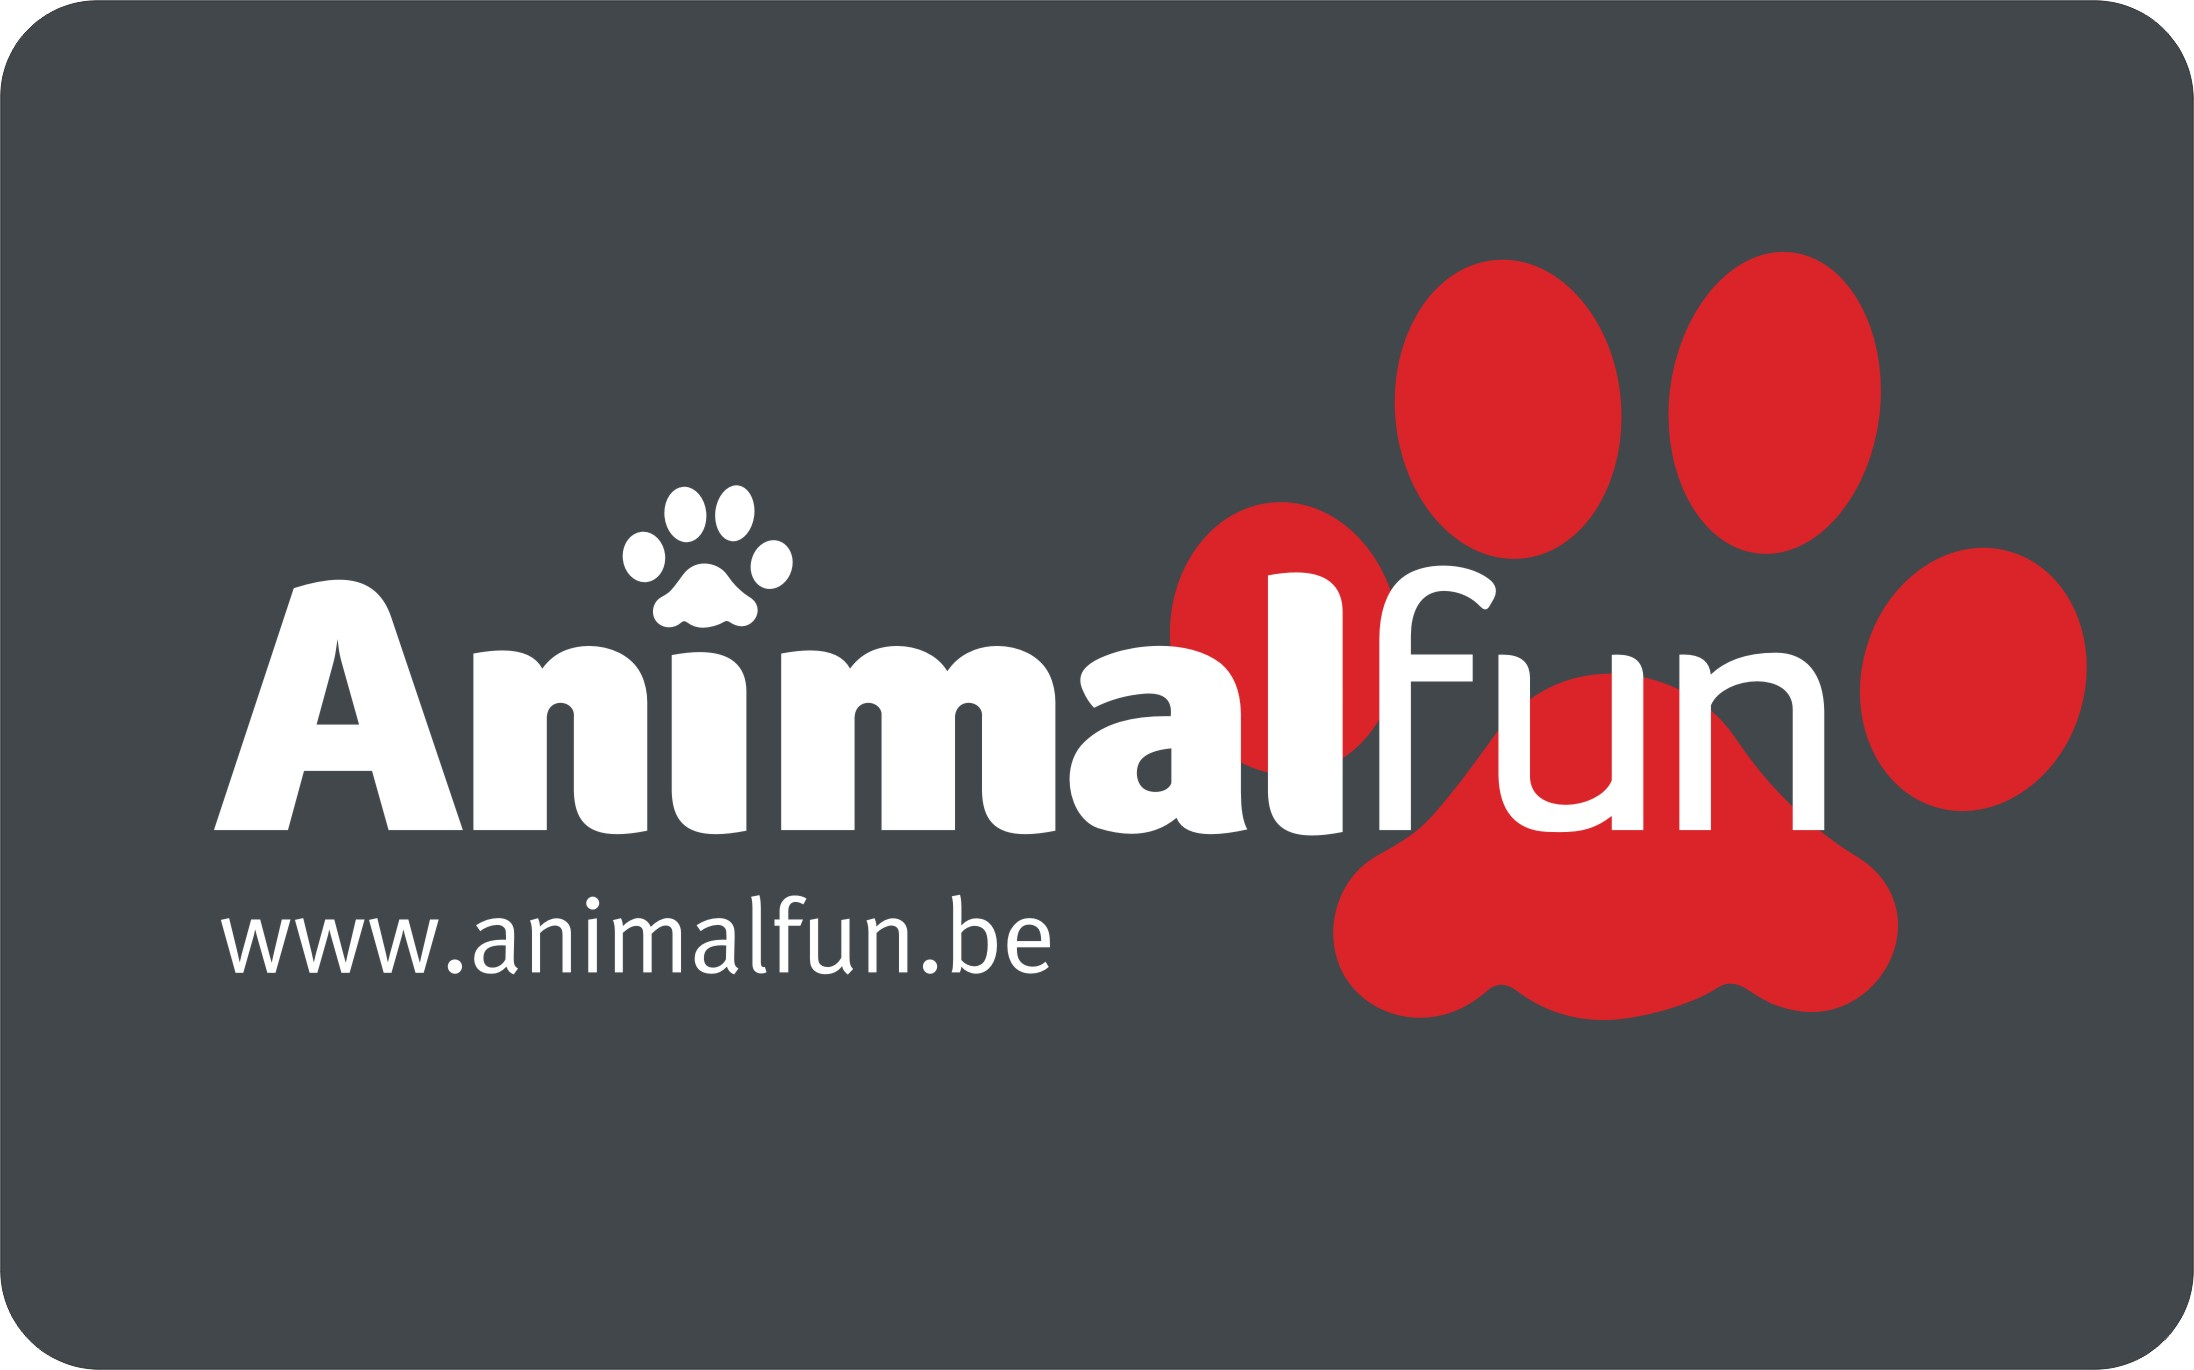 Animal Fun promotie : Overzicht weekacties en promos Animal Fun